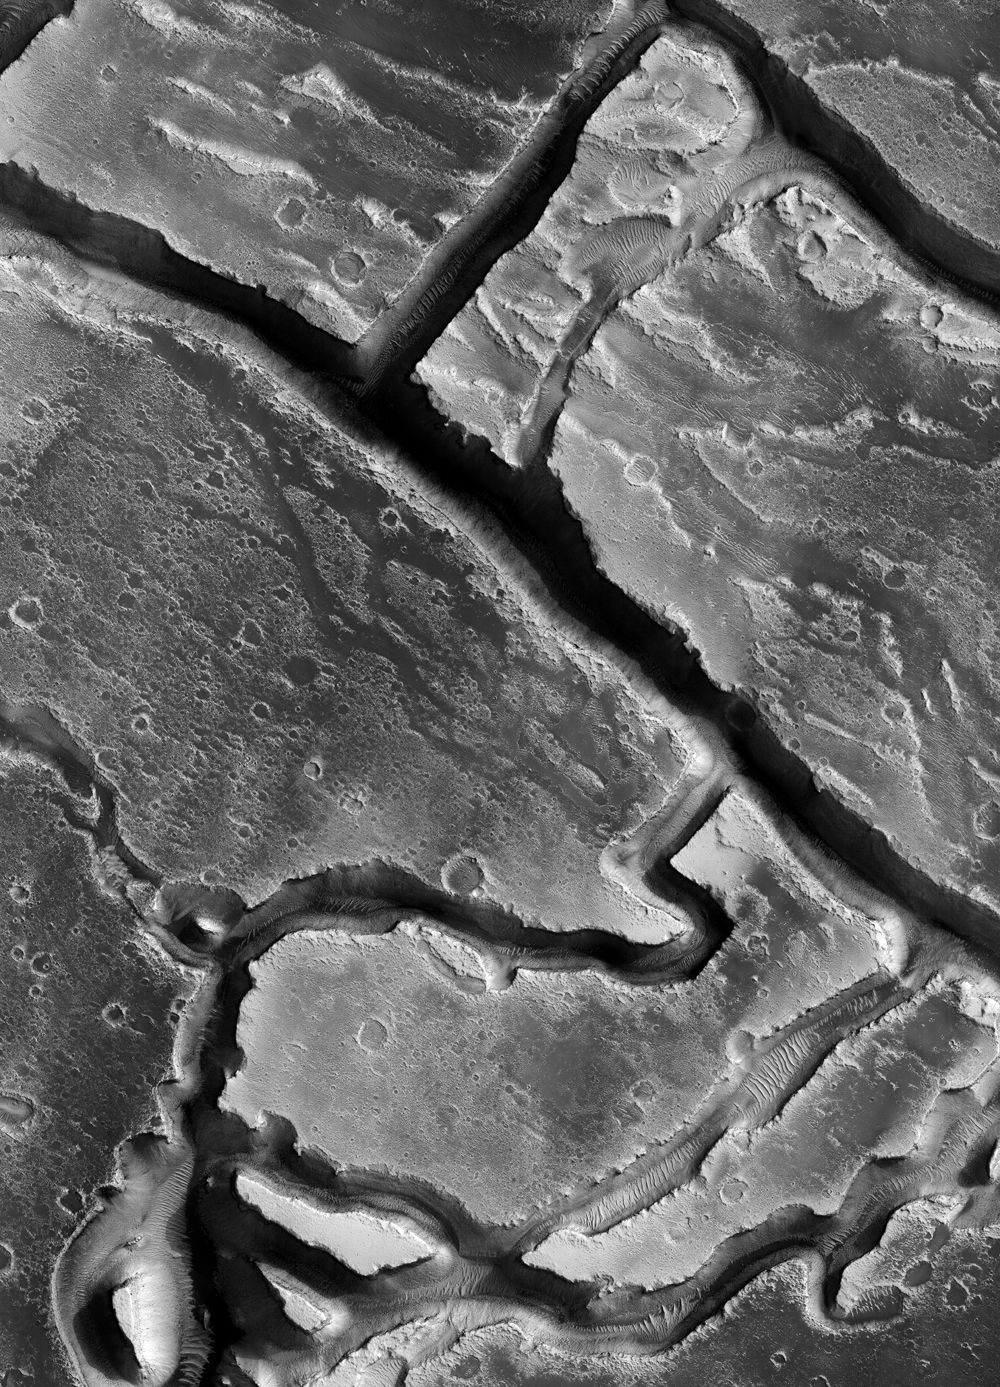 Stunning Photos Of The Red Planet In Black And White Planets Mars Hubble